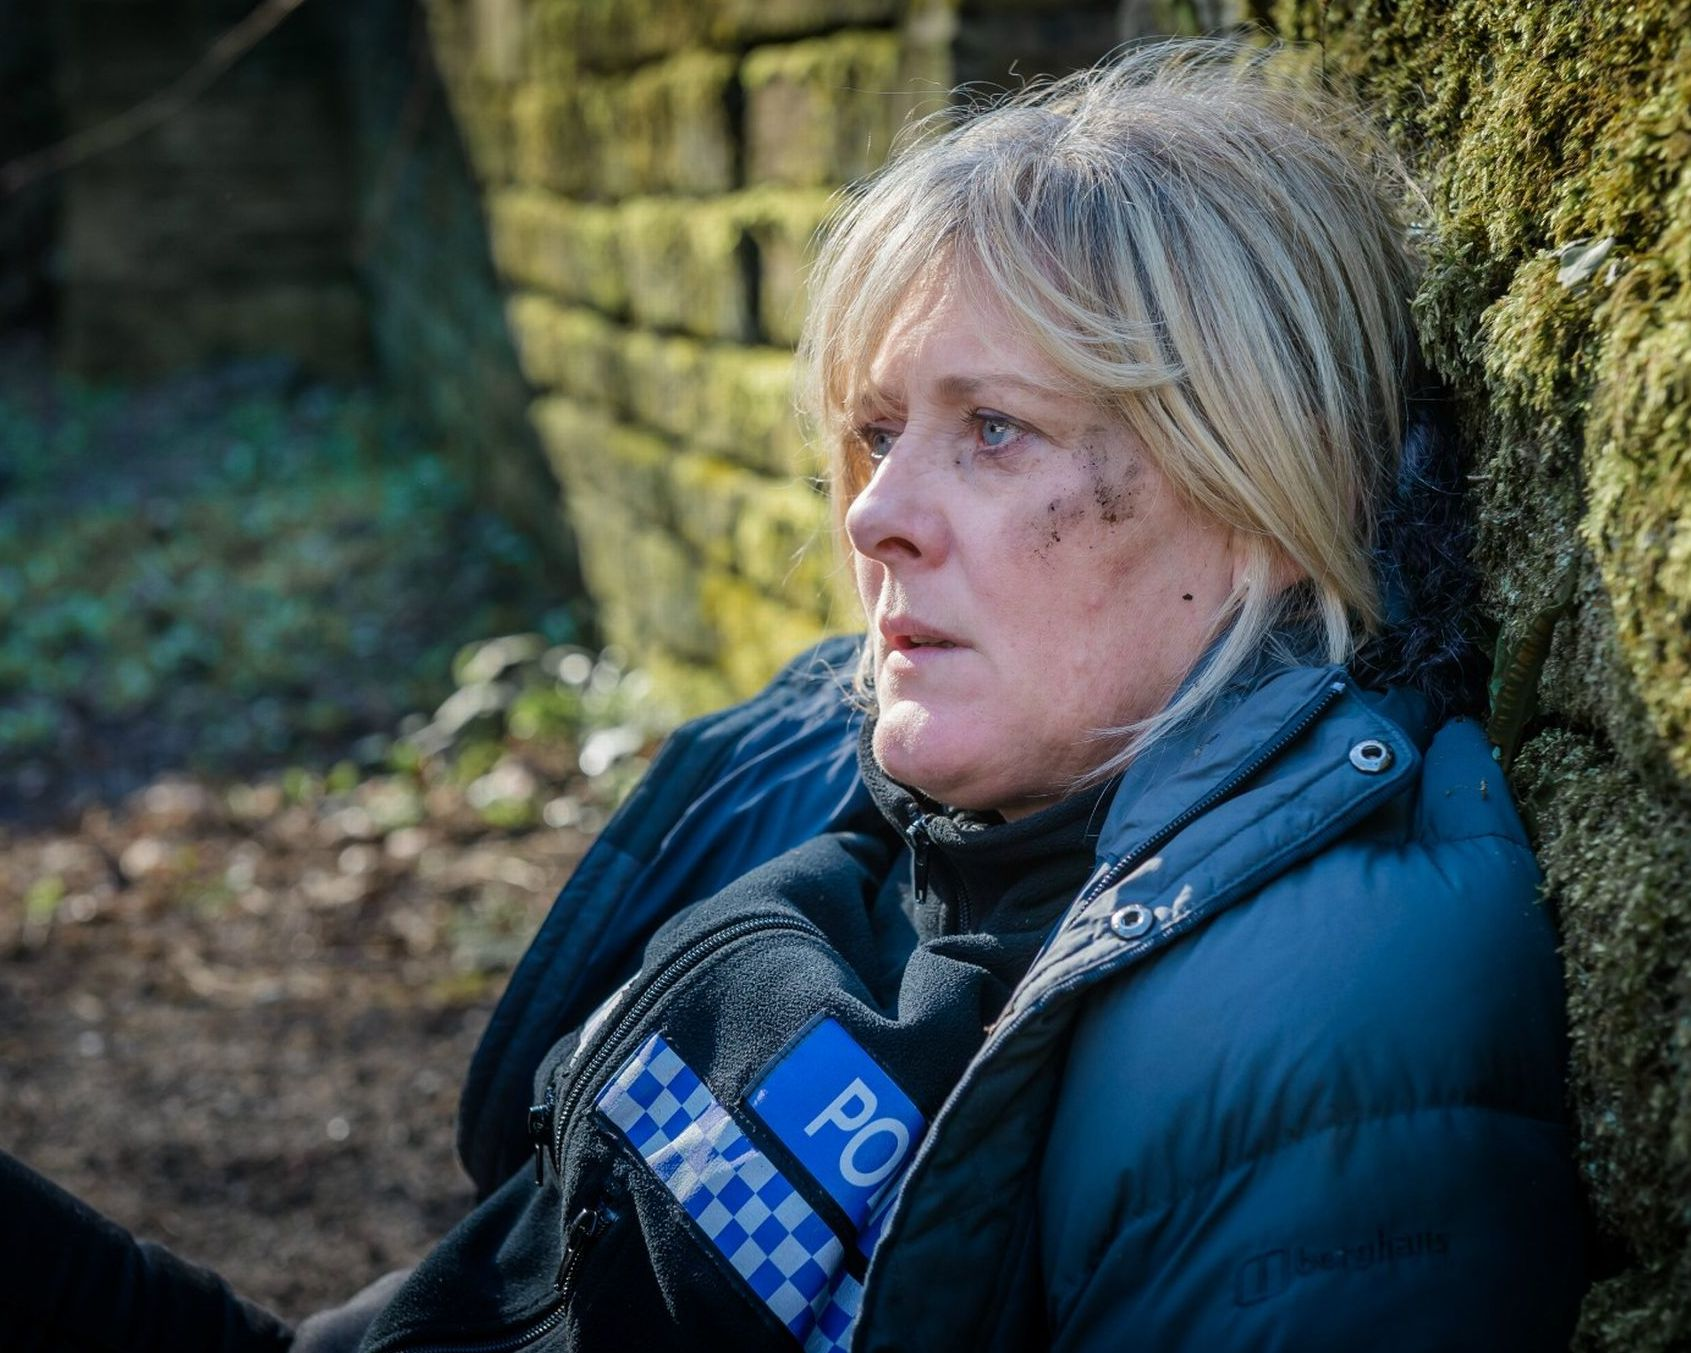 Sarah Lancashire in the dirt